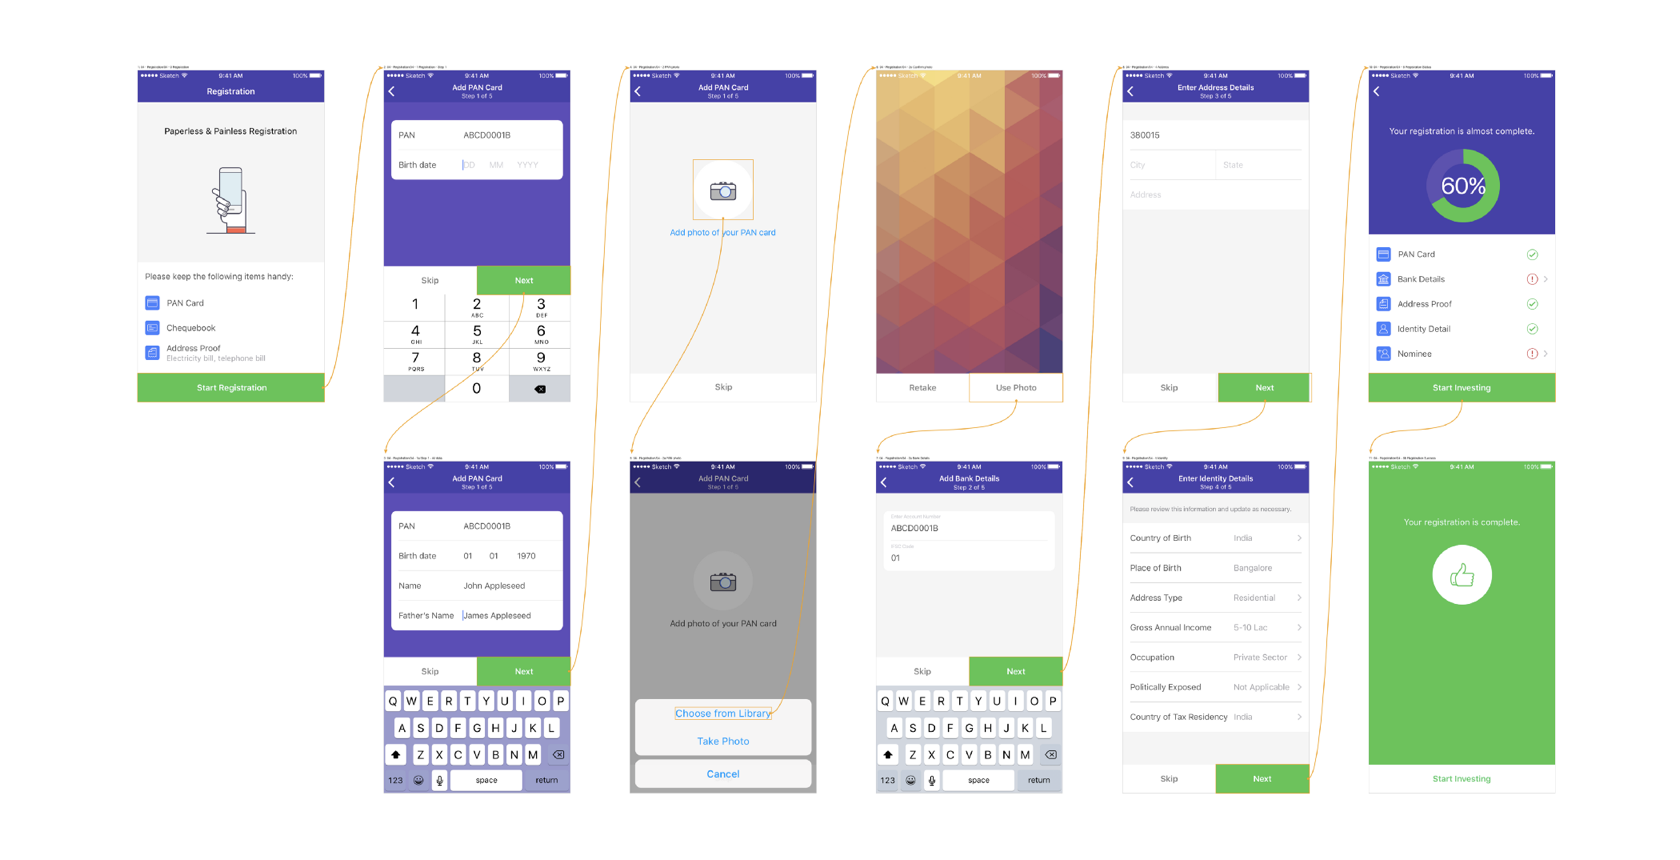 Best practices for financial app design involve breaking down complex features